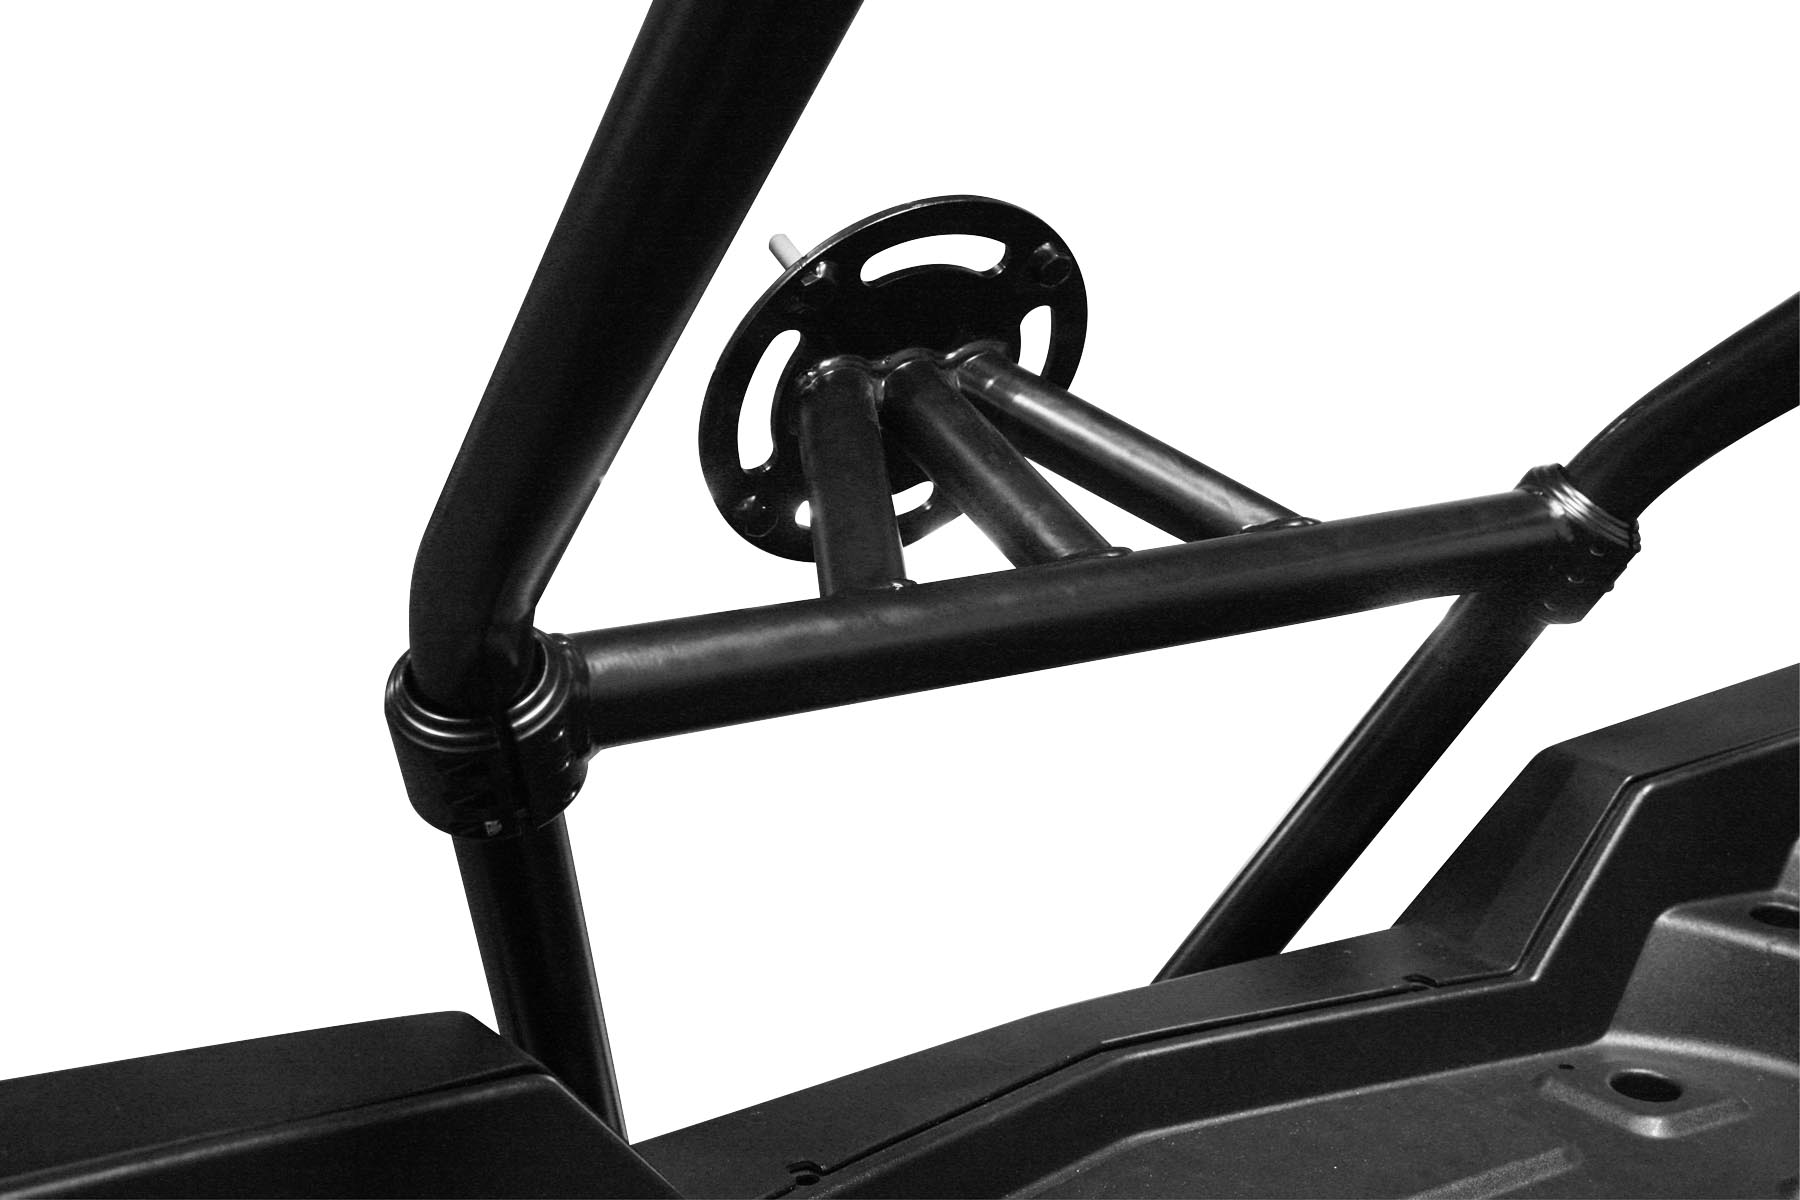 Dragonfire Racing RacePace Black Bed Spare Tire Carrier Mount Polaris RZR 900